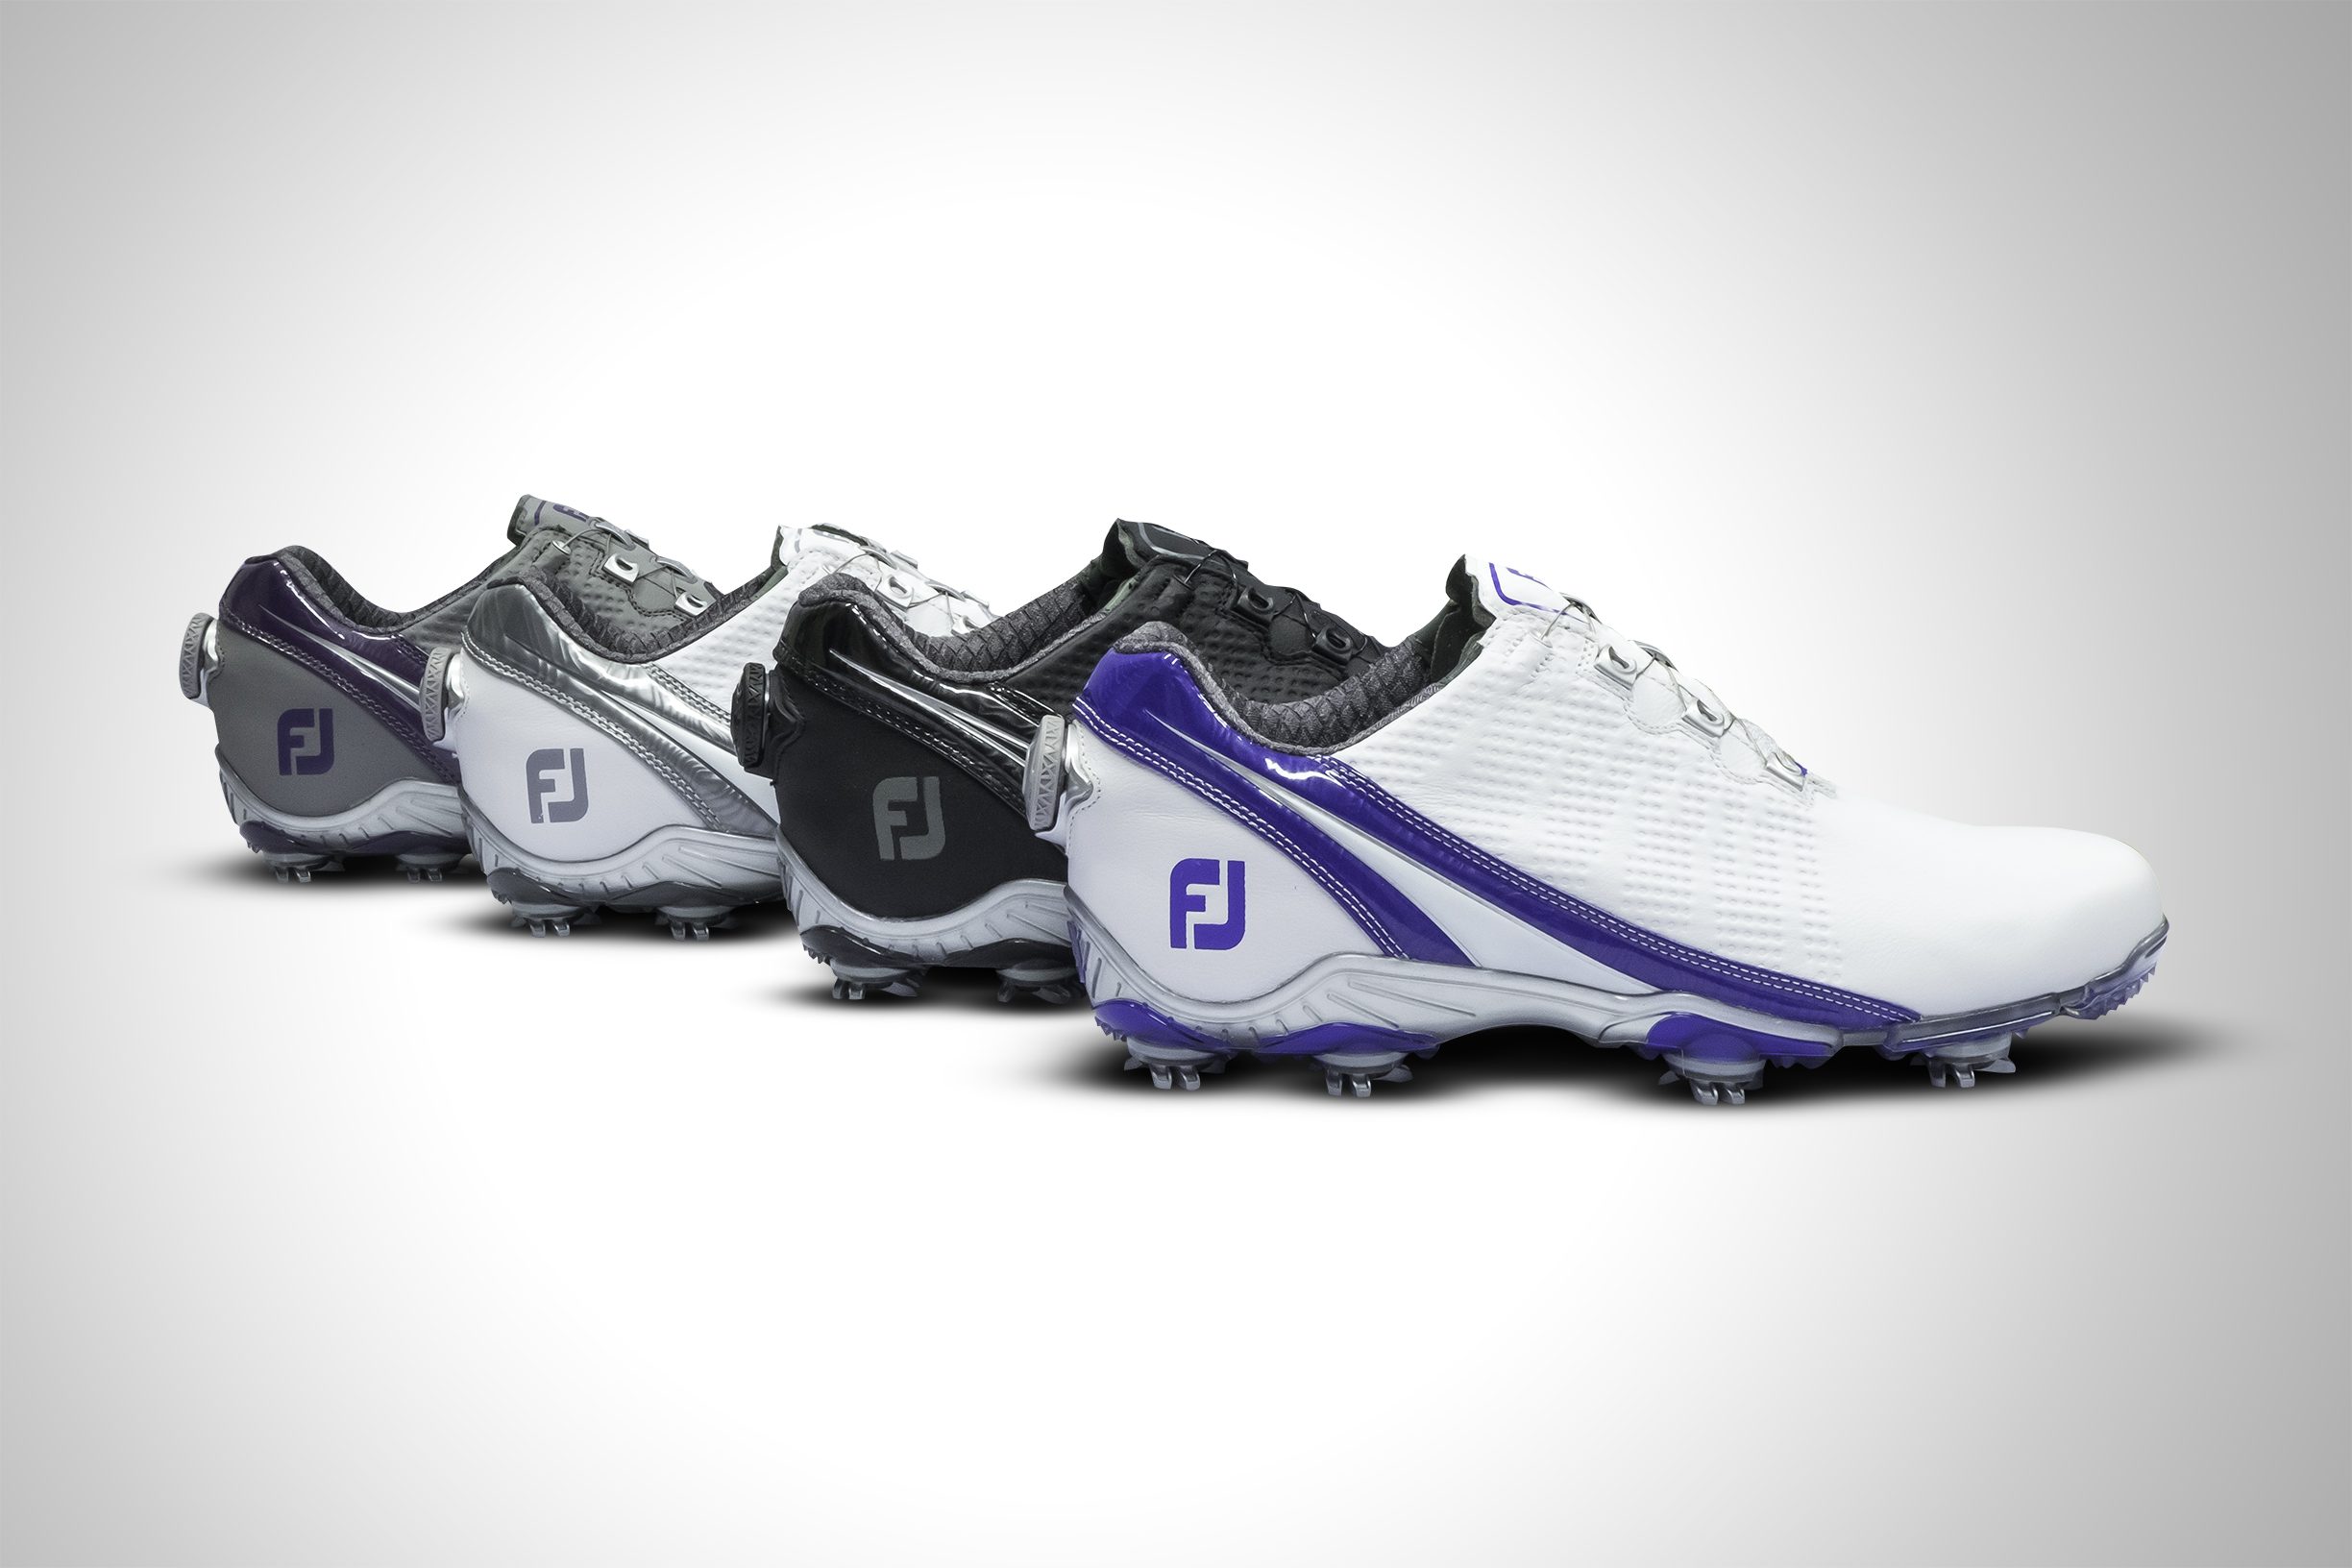 FootJoy's New D.N.A cover image